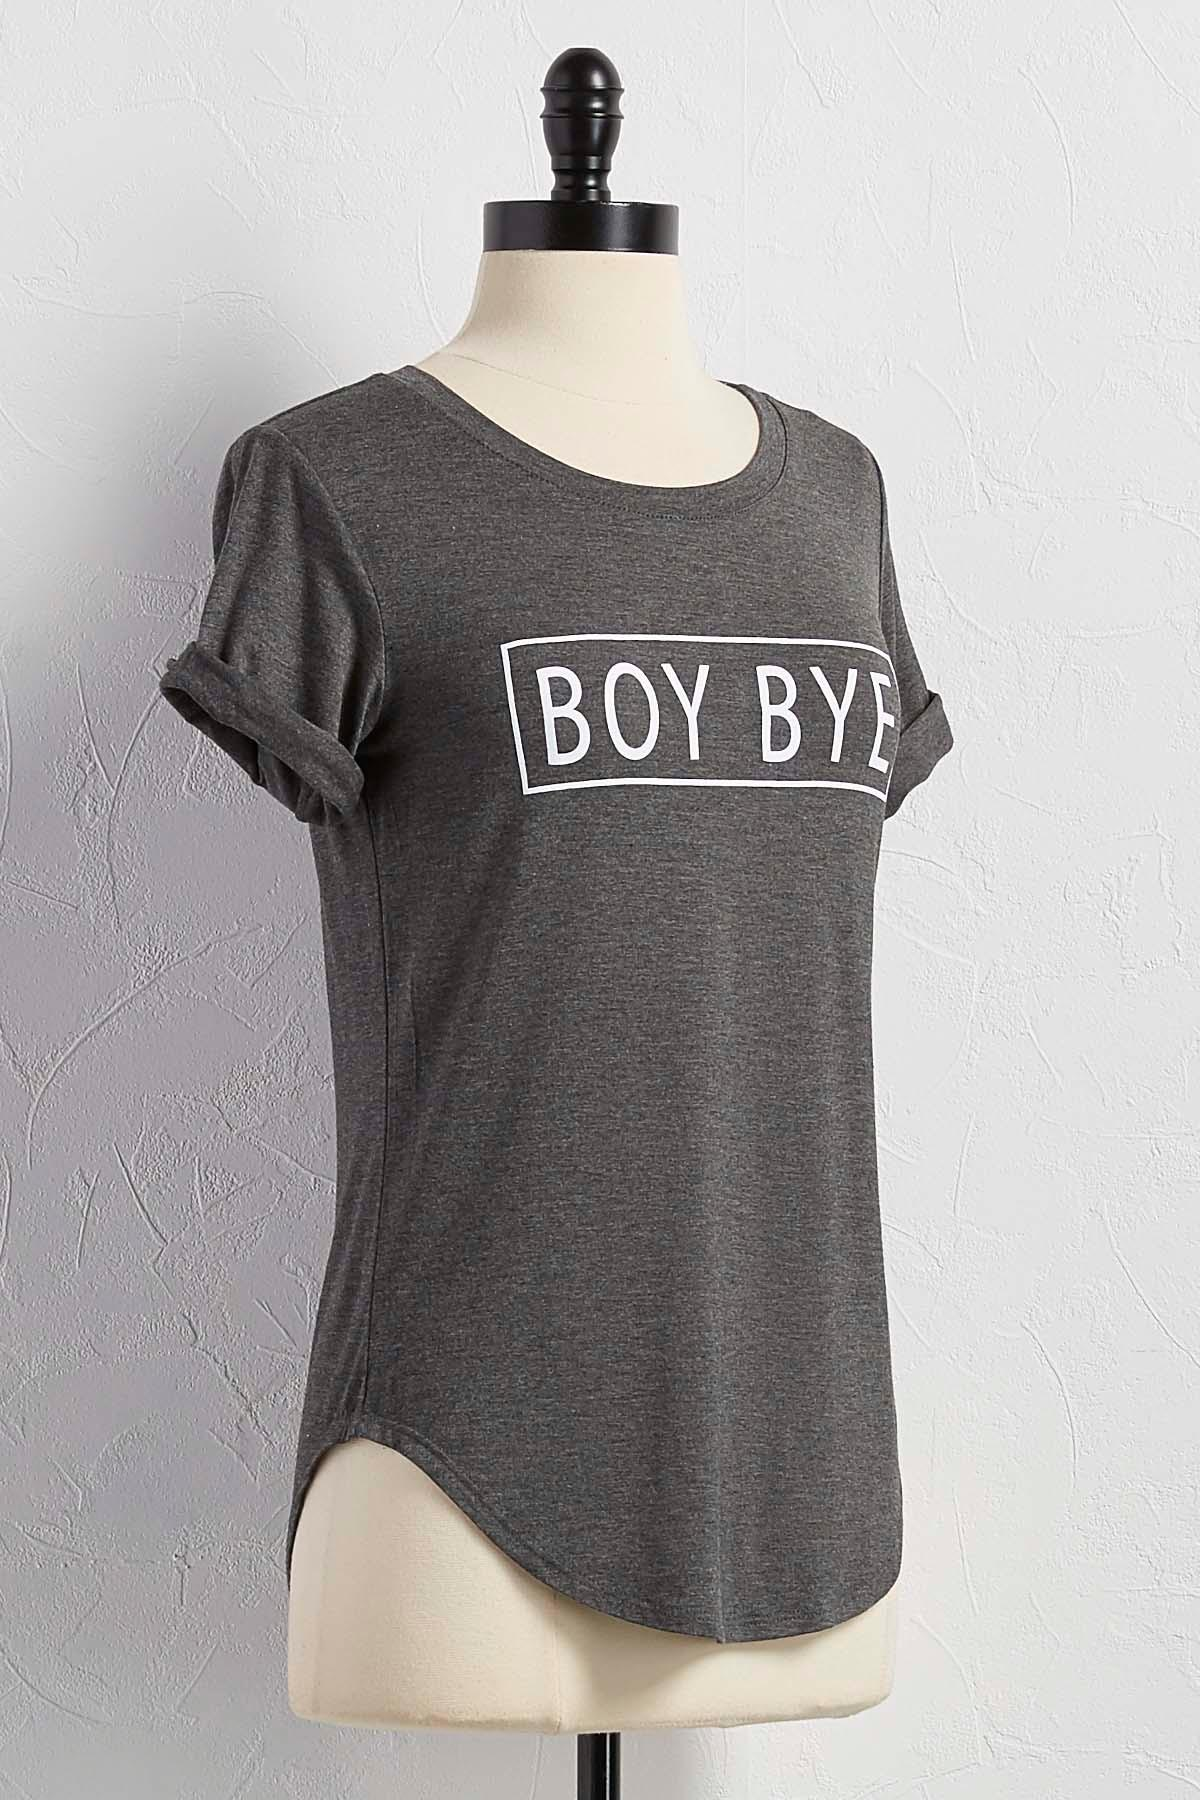 Boy Bye Graphic Tee